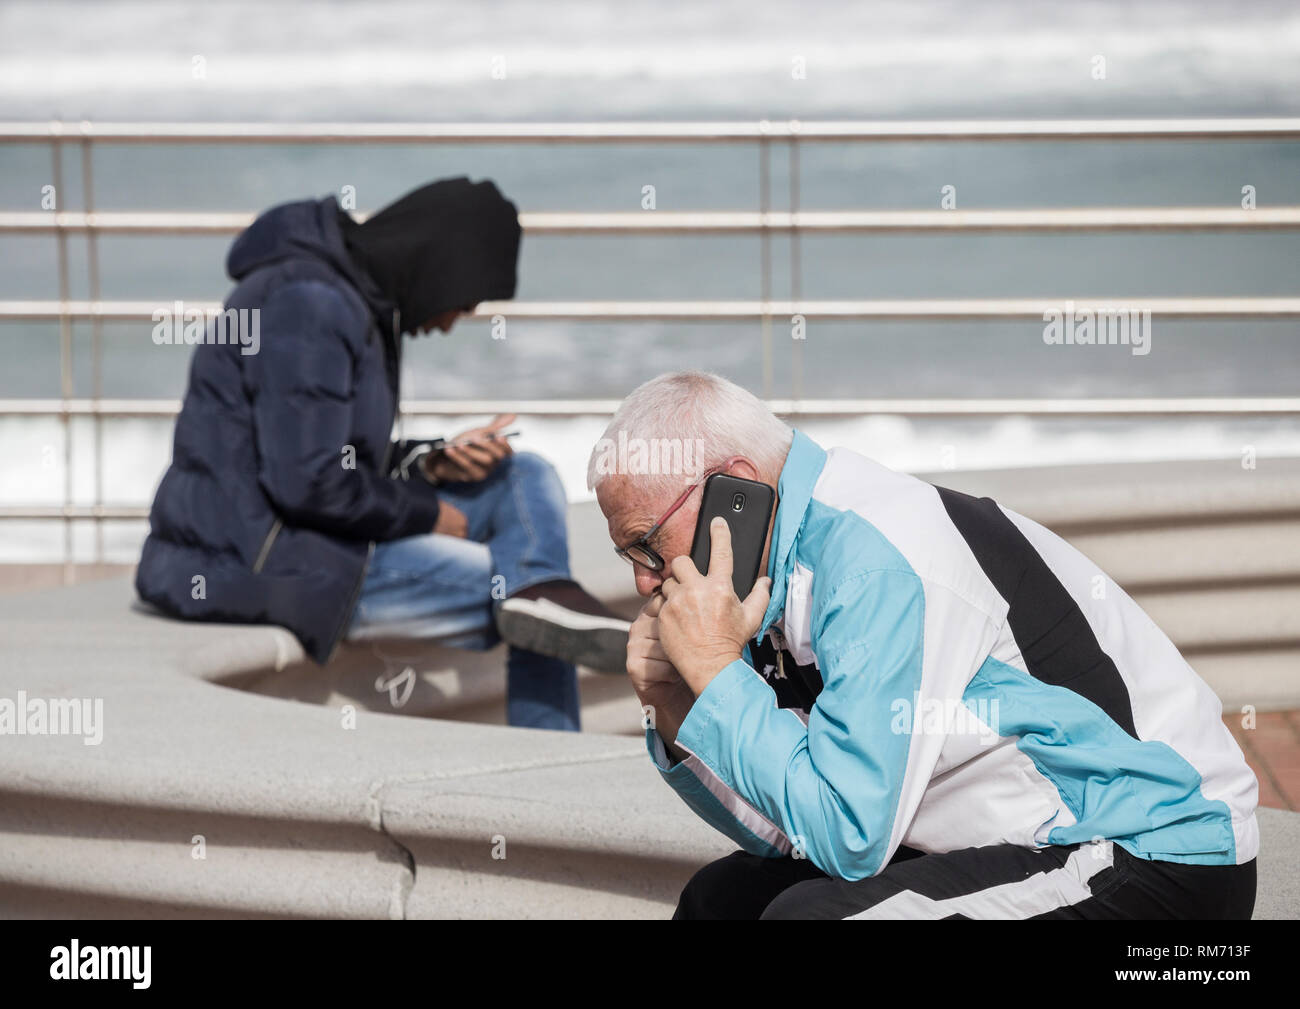 Elderly man and young man sitting on seat oveloooking the sea. Both using mobile phones - Stock Image